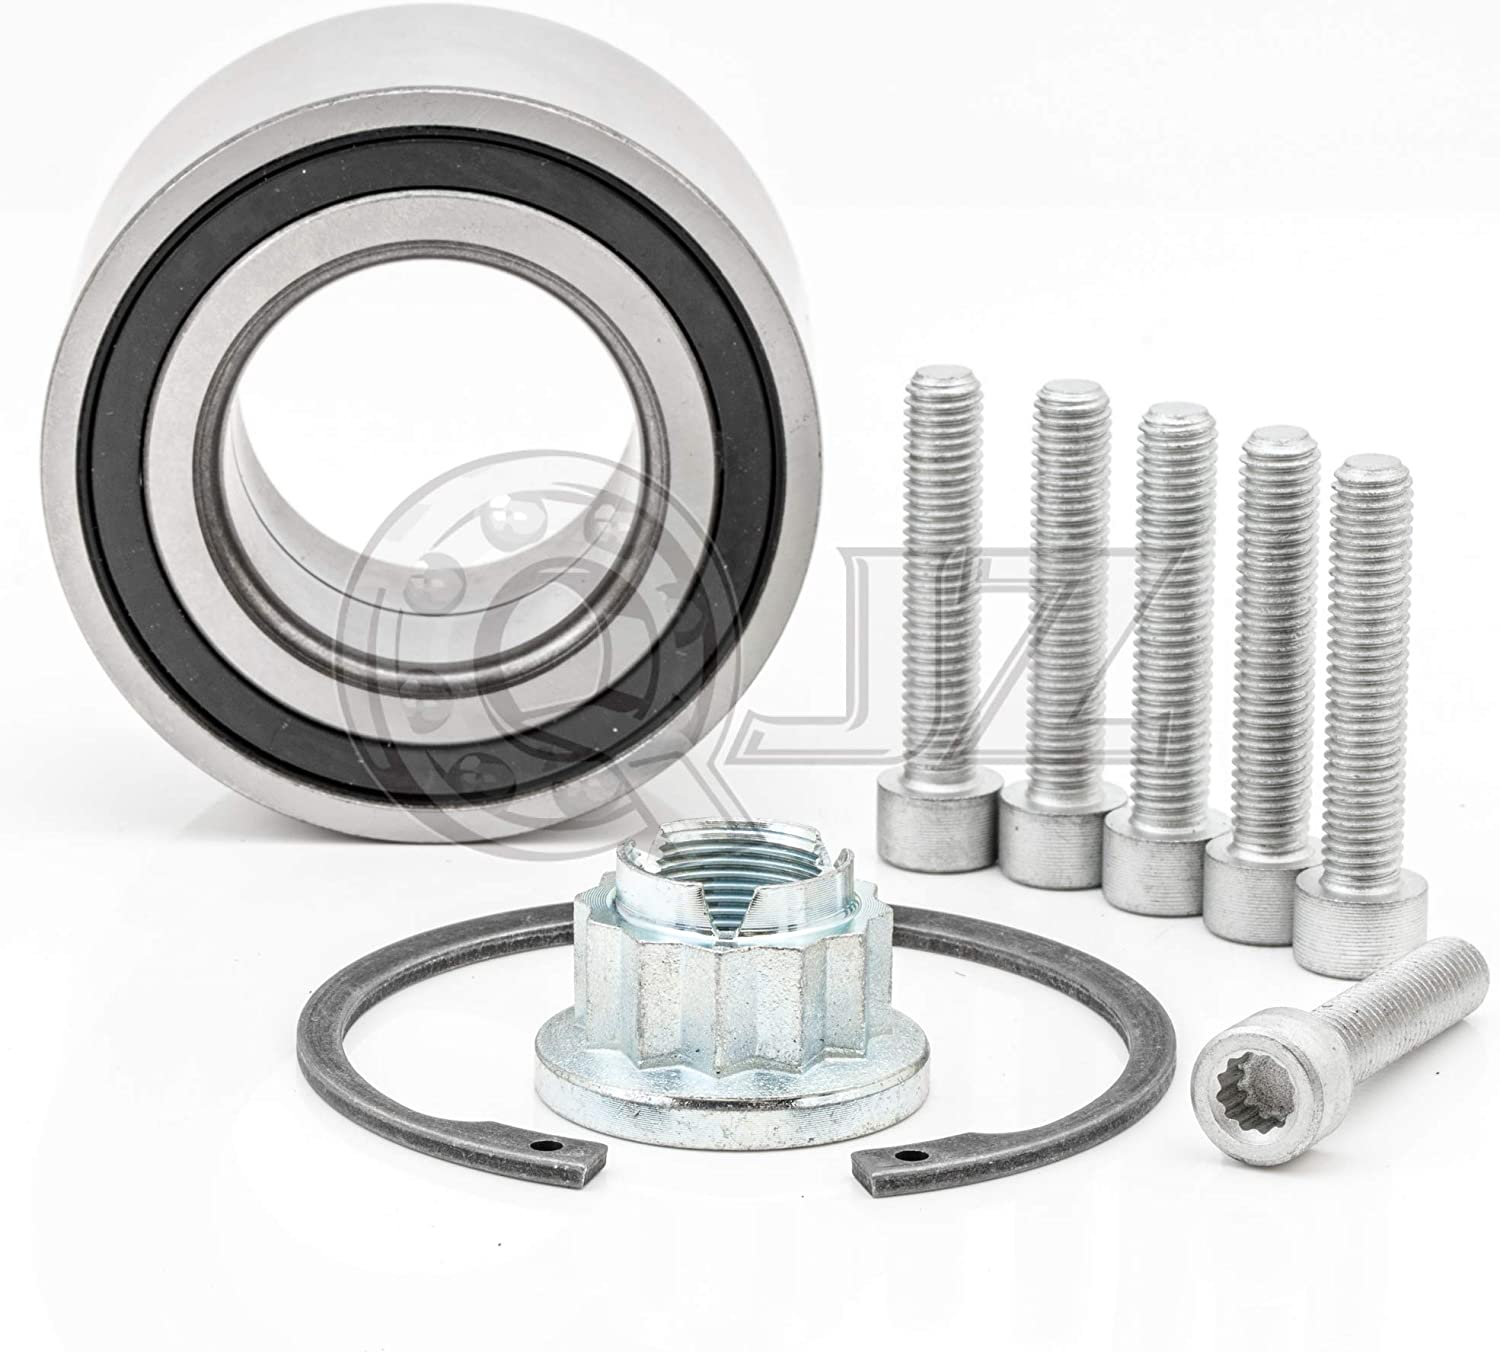 2007-2011 Audi Q7 510082K Wheel Bearing with Fixing Kit for 2003-2009 Porsche Cayenne Cross Reference: FAG# 7L0498287 2004-2010 Volkswagen Touareg Front Pair or Rear Pair